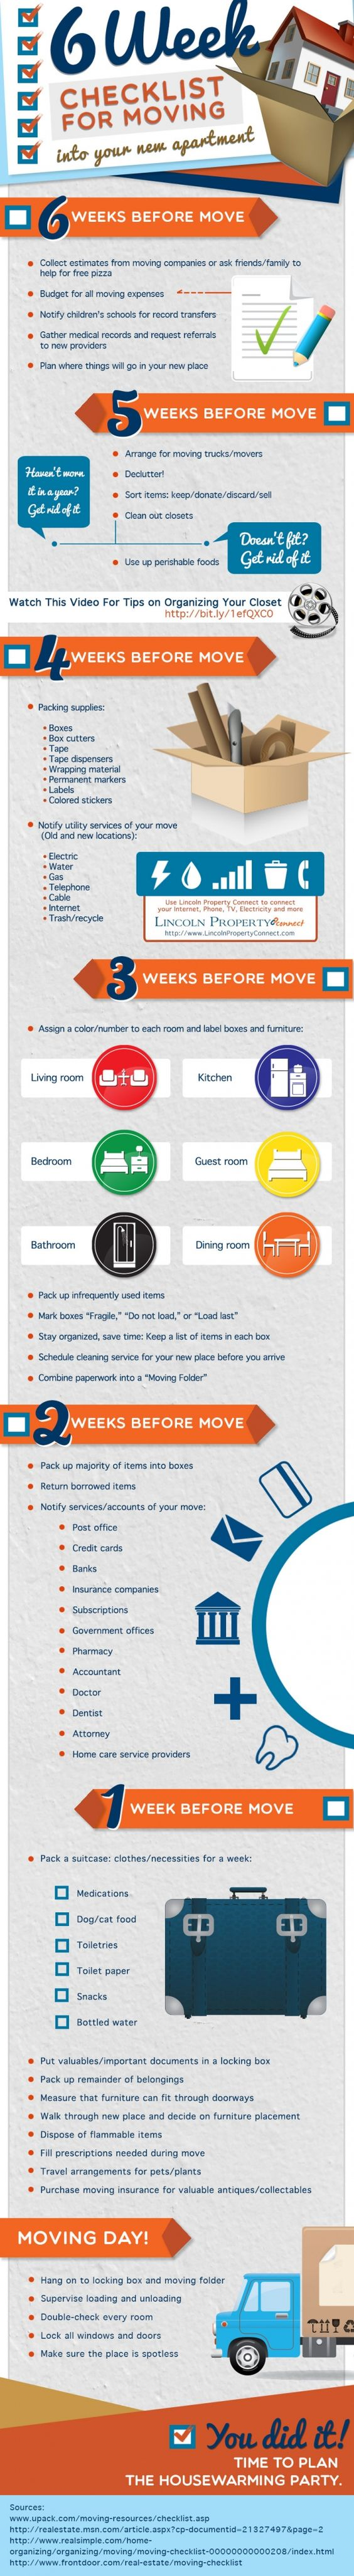 6 weeks checklist for moving.jpg